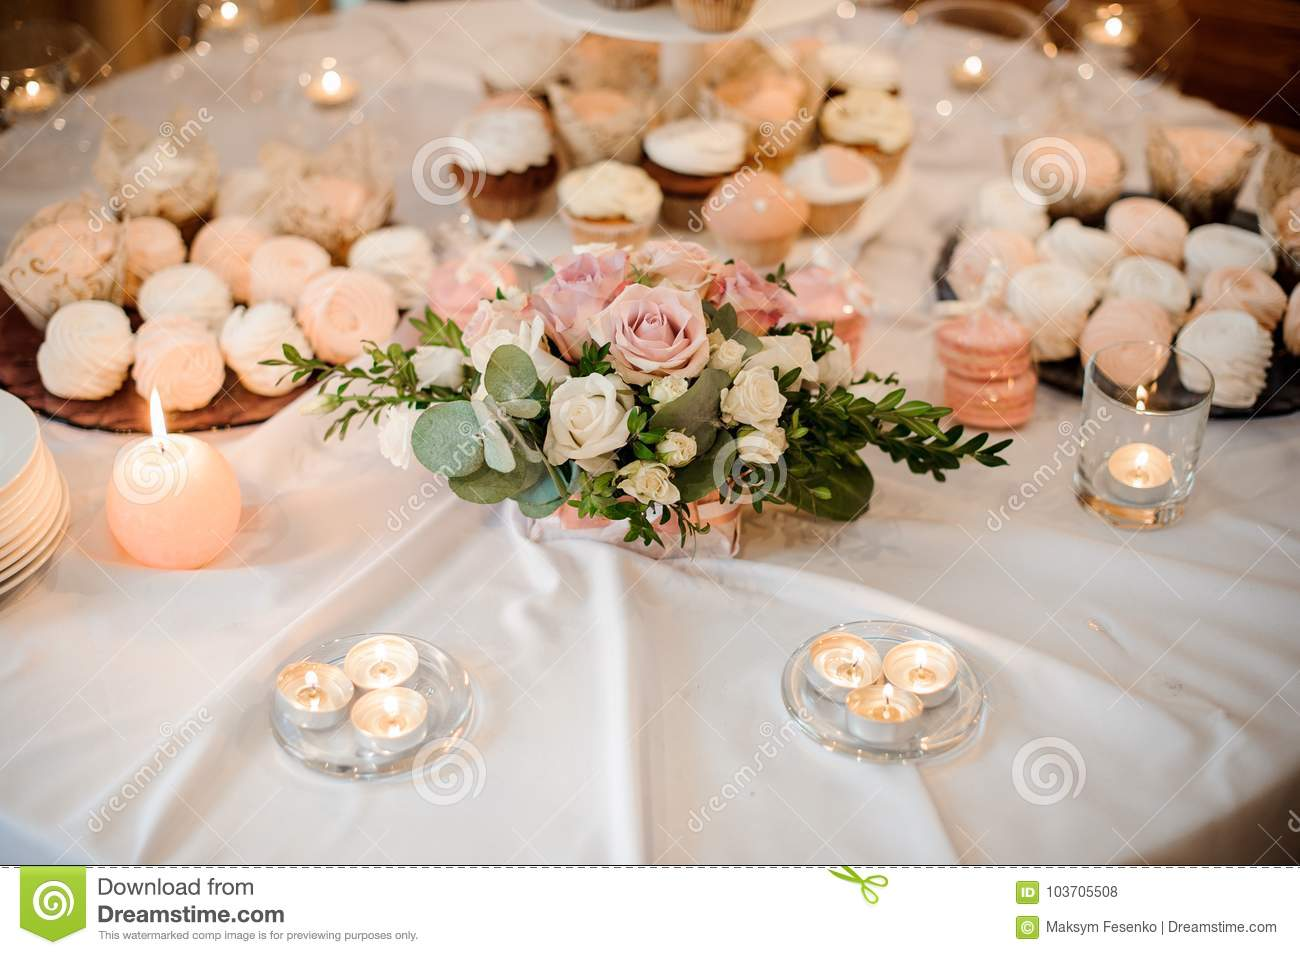 Beautiful Flower Composition And Candles Decorating A Festive Table